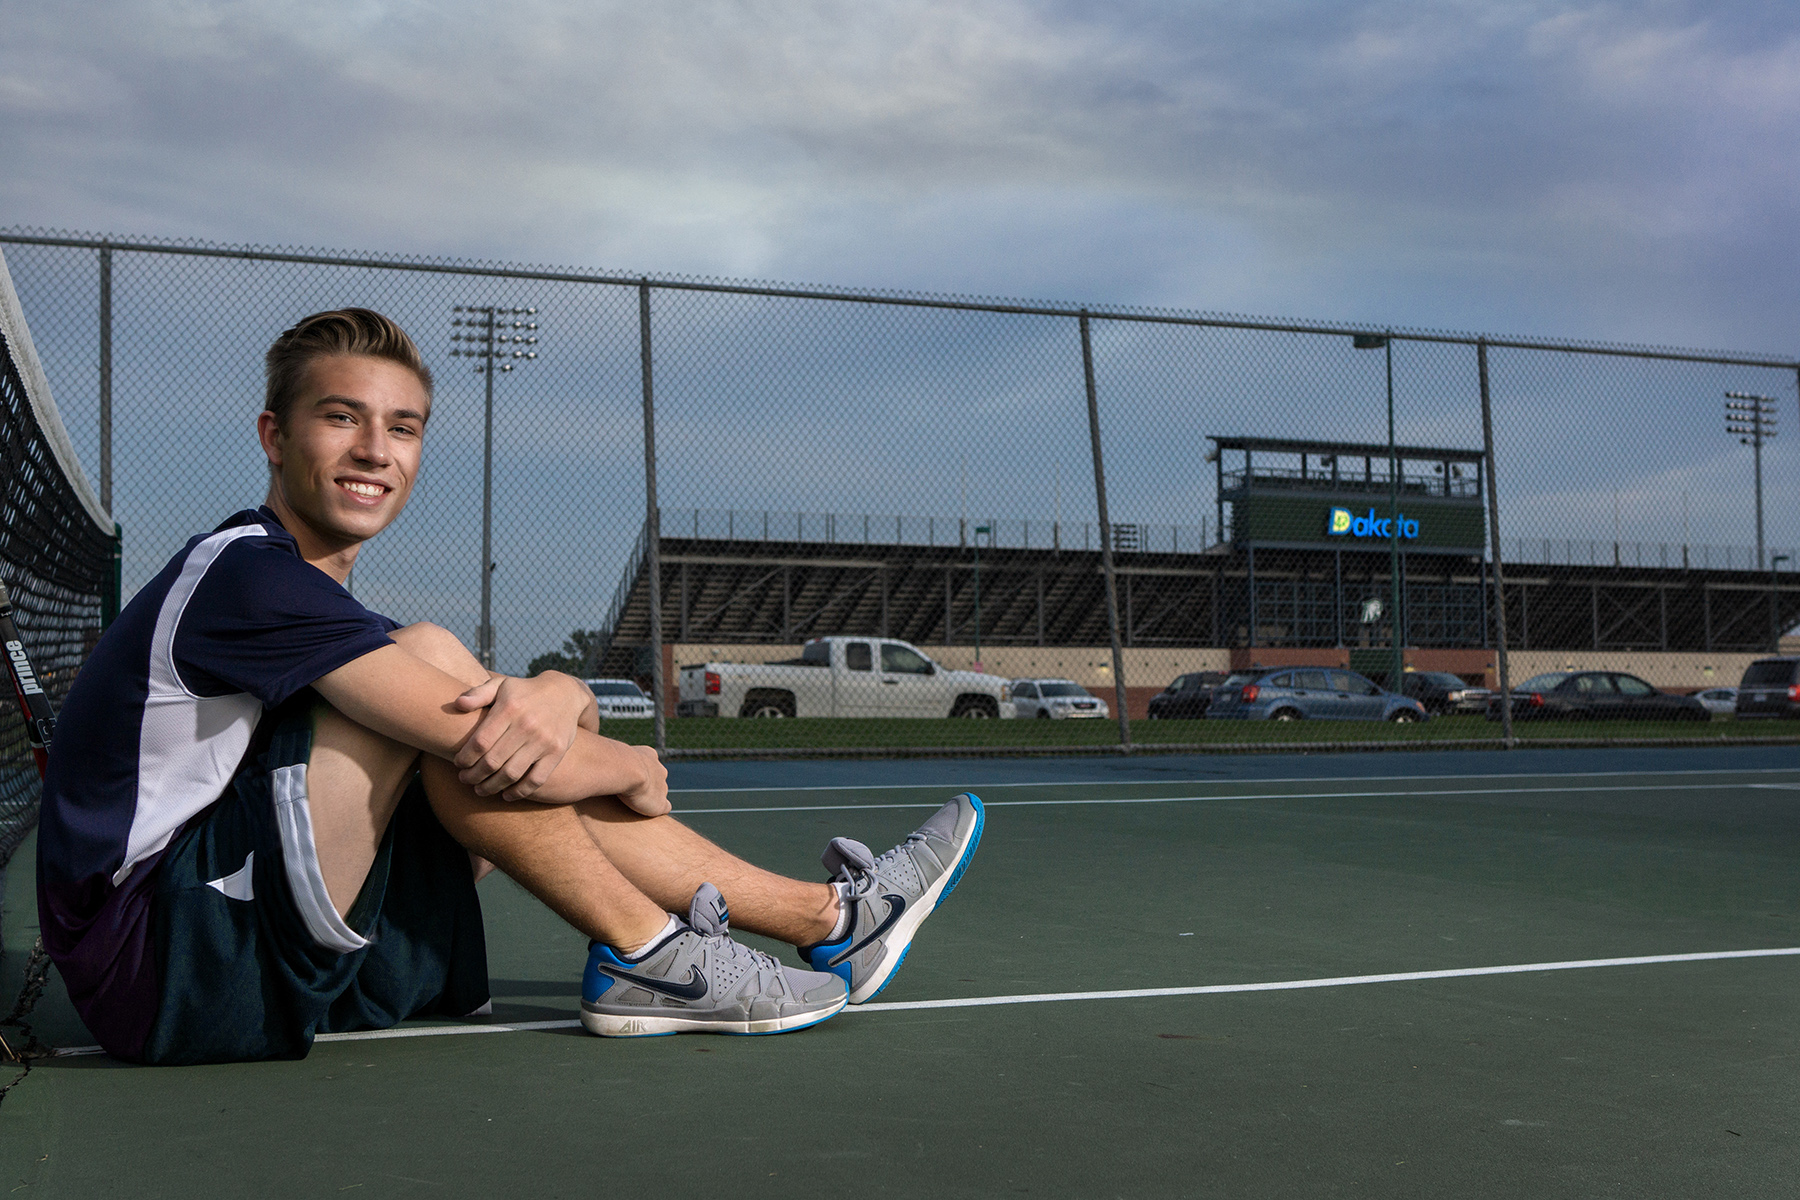 Macomb Dakota High School Senior Portraits Sports Tennis